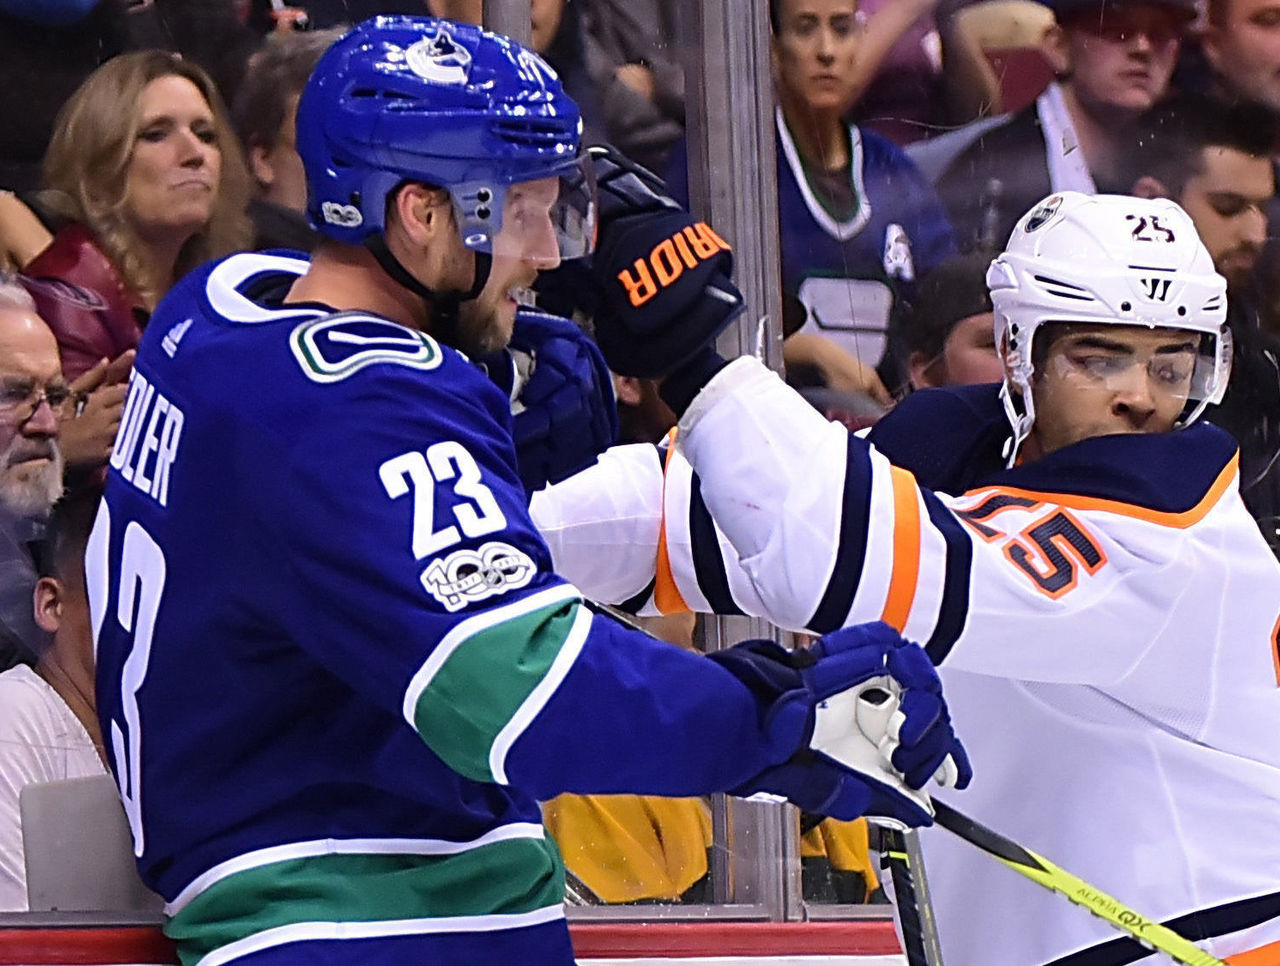 Cropped 2017 10 08t040816z 1128714232 nocid rtrmadp 3 nhl edmonton oilers at vancouver canucks